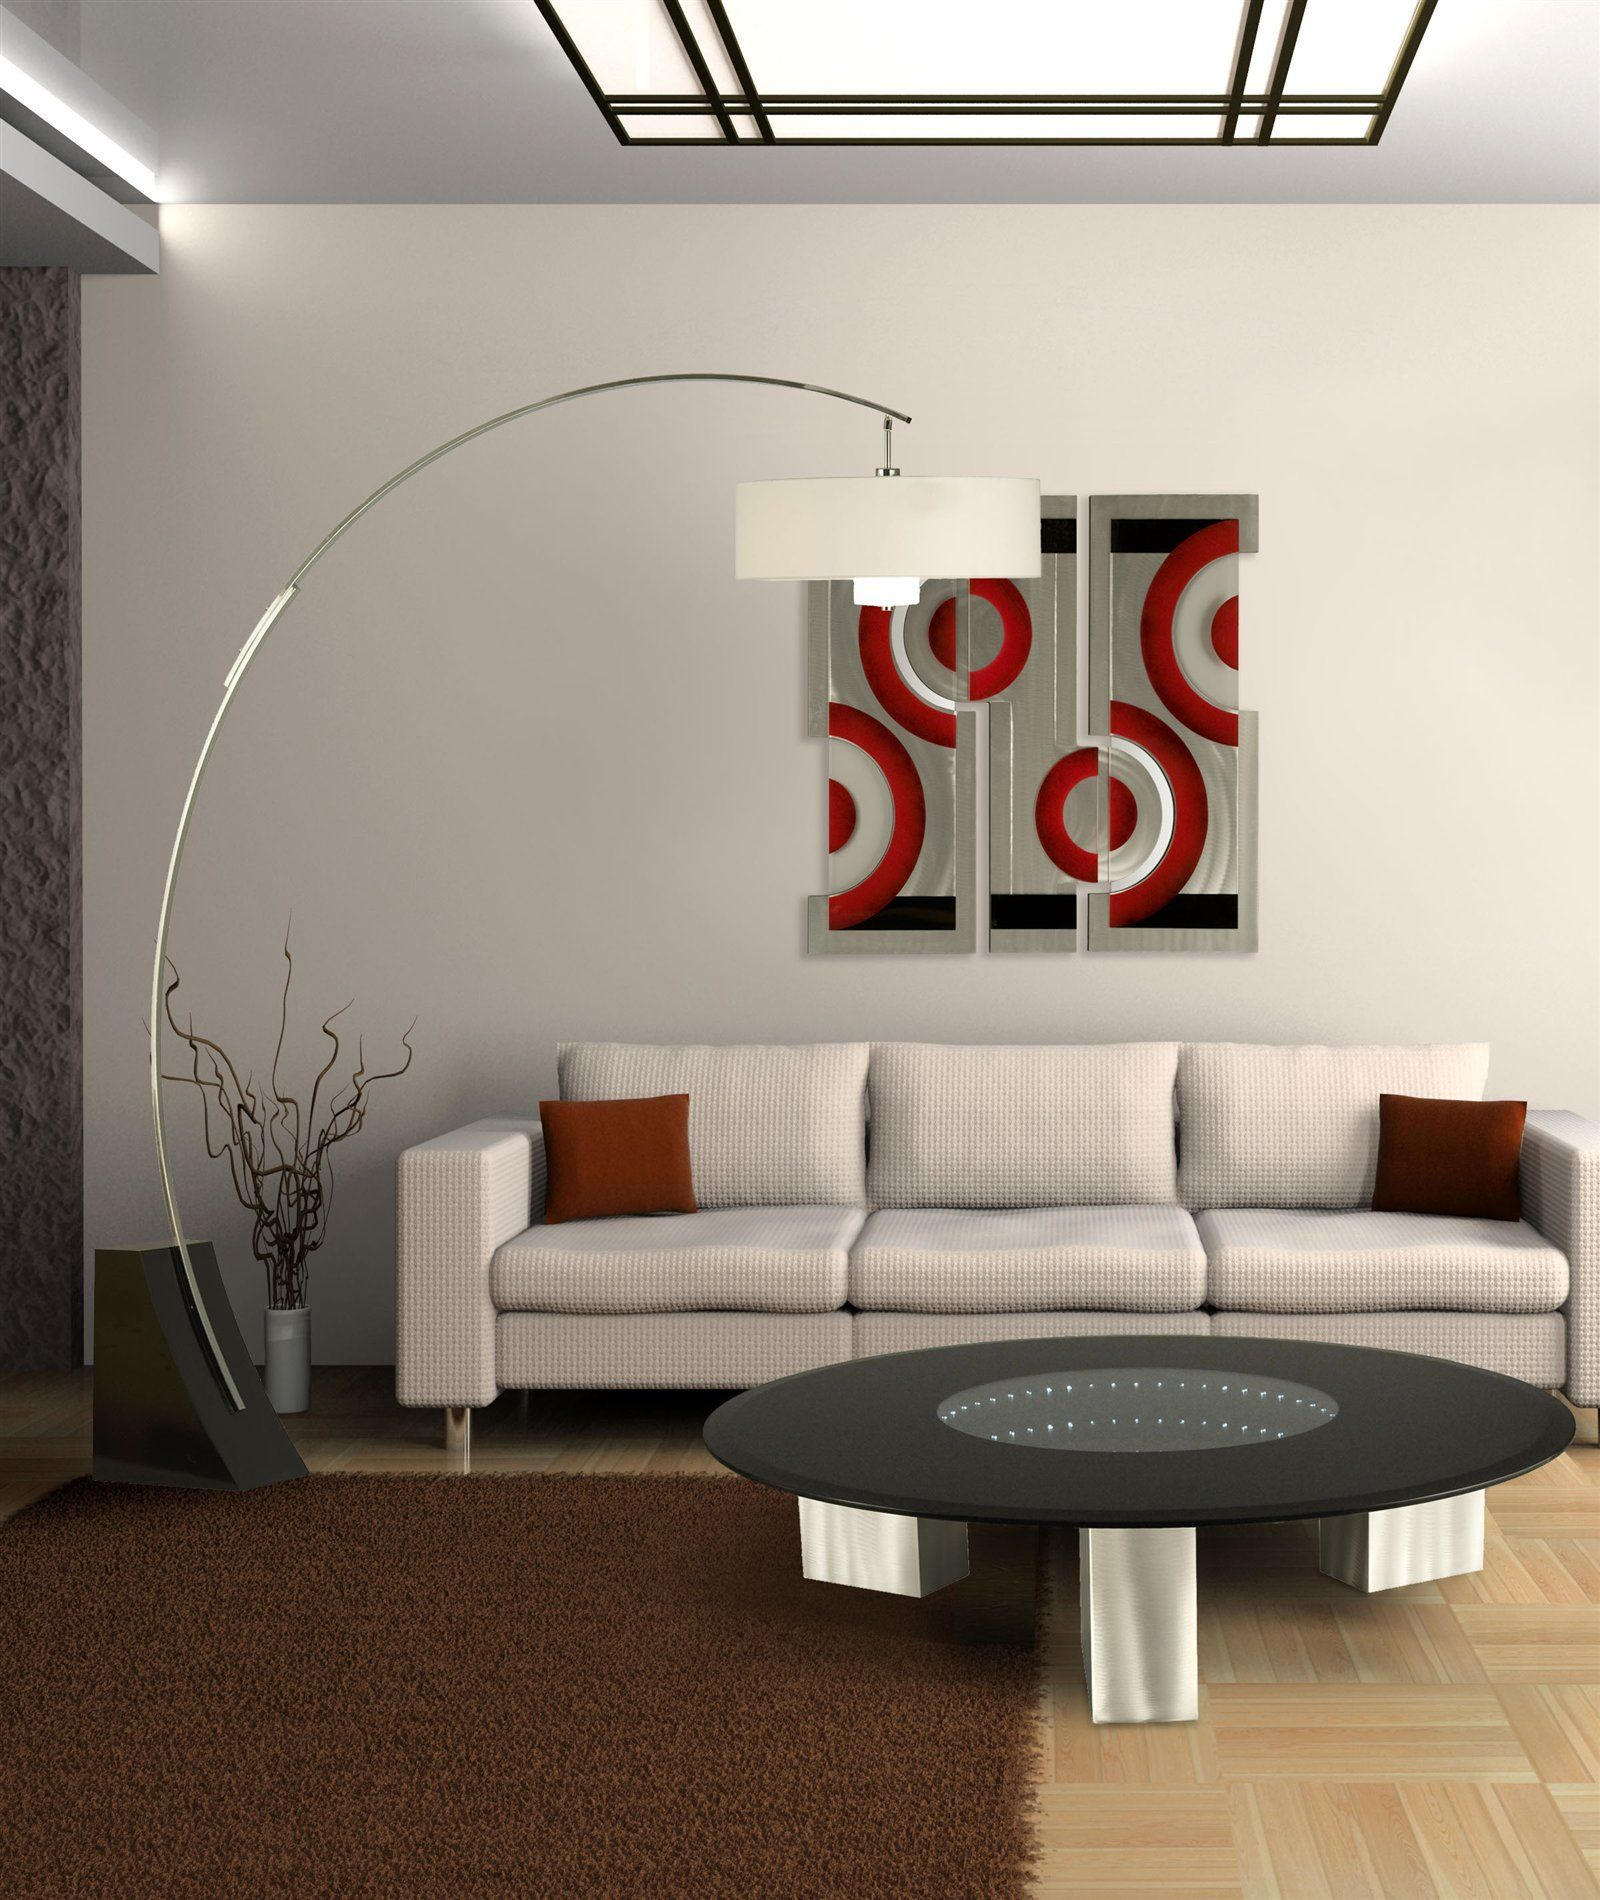 Exceptional Oil Paintings Different Styles To Supply For You! May Be You Can Hang Them  · Living Room Floor LampsArc ...